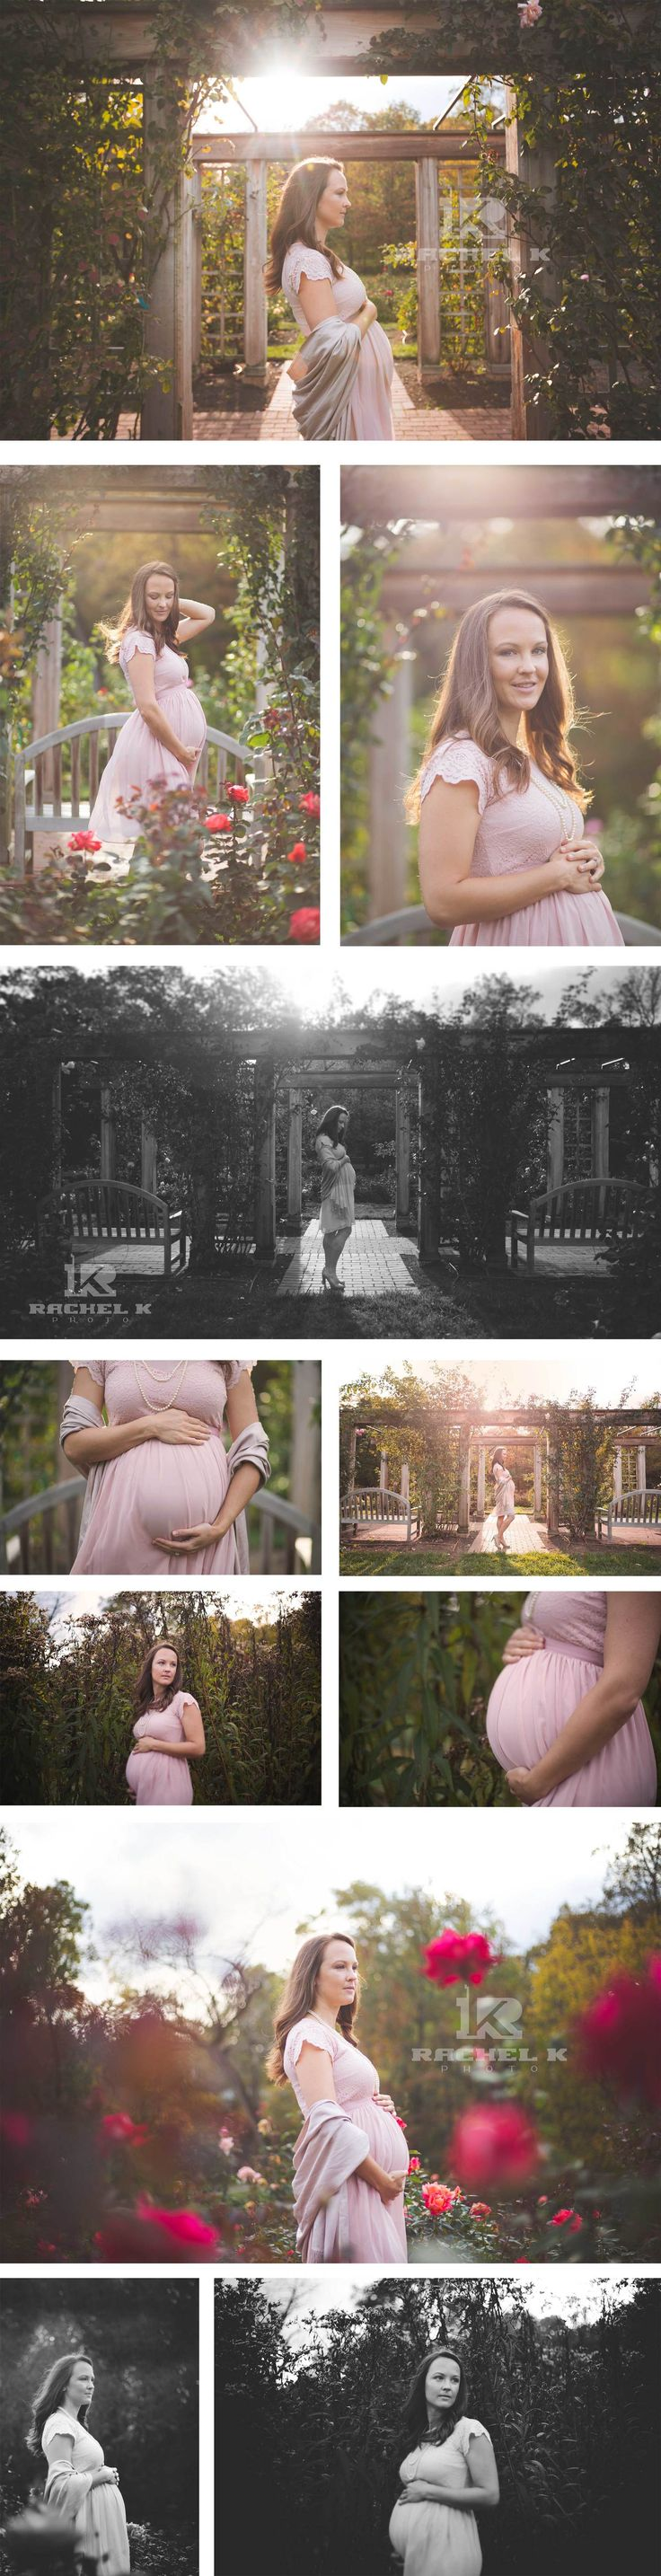 Breath taking maternity photos in rose garden by northern Virginia's premier on location maternity photographer Rachel K Photo.